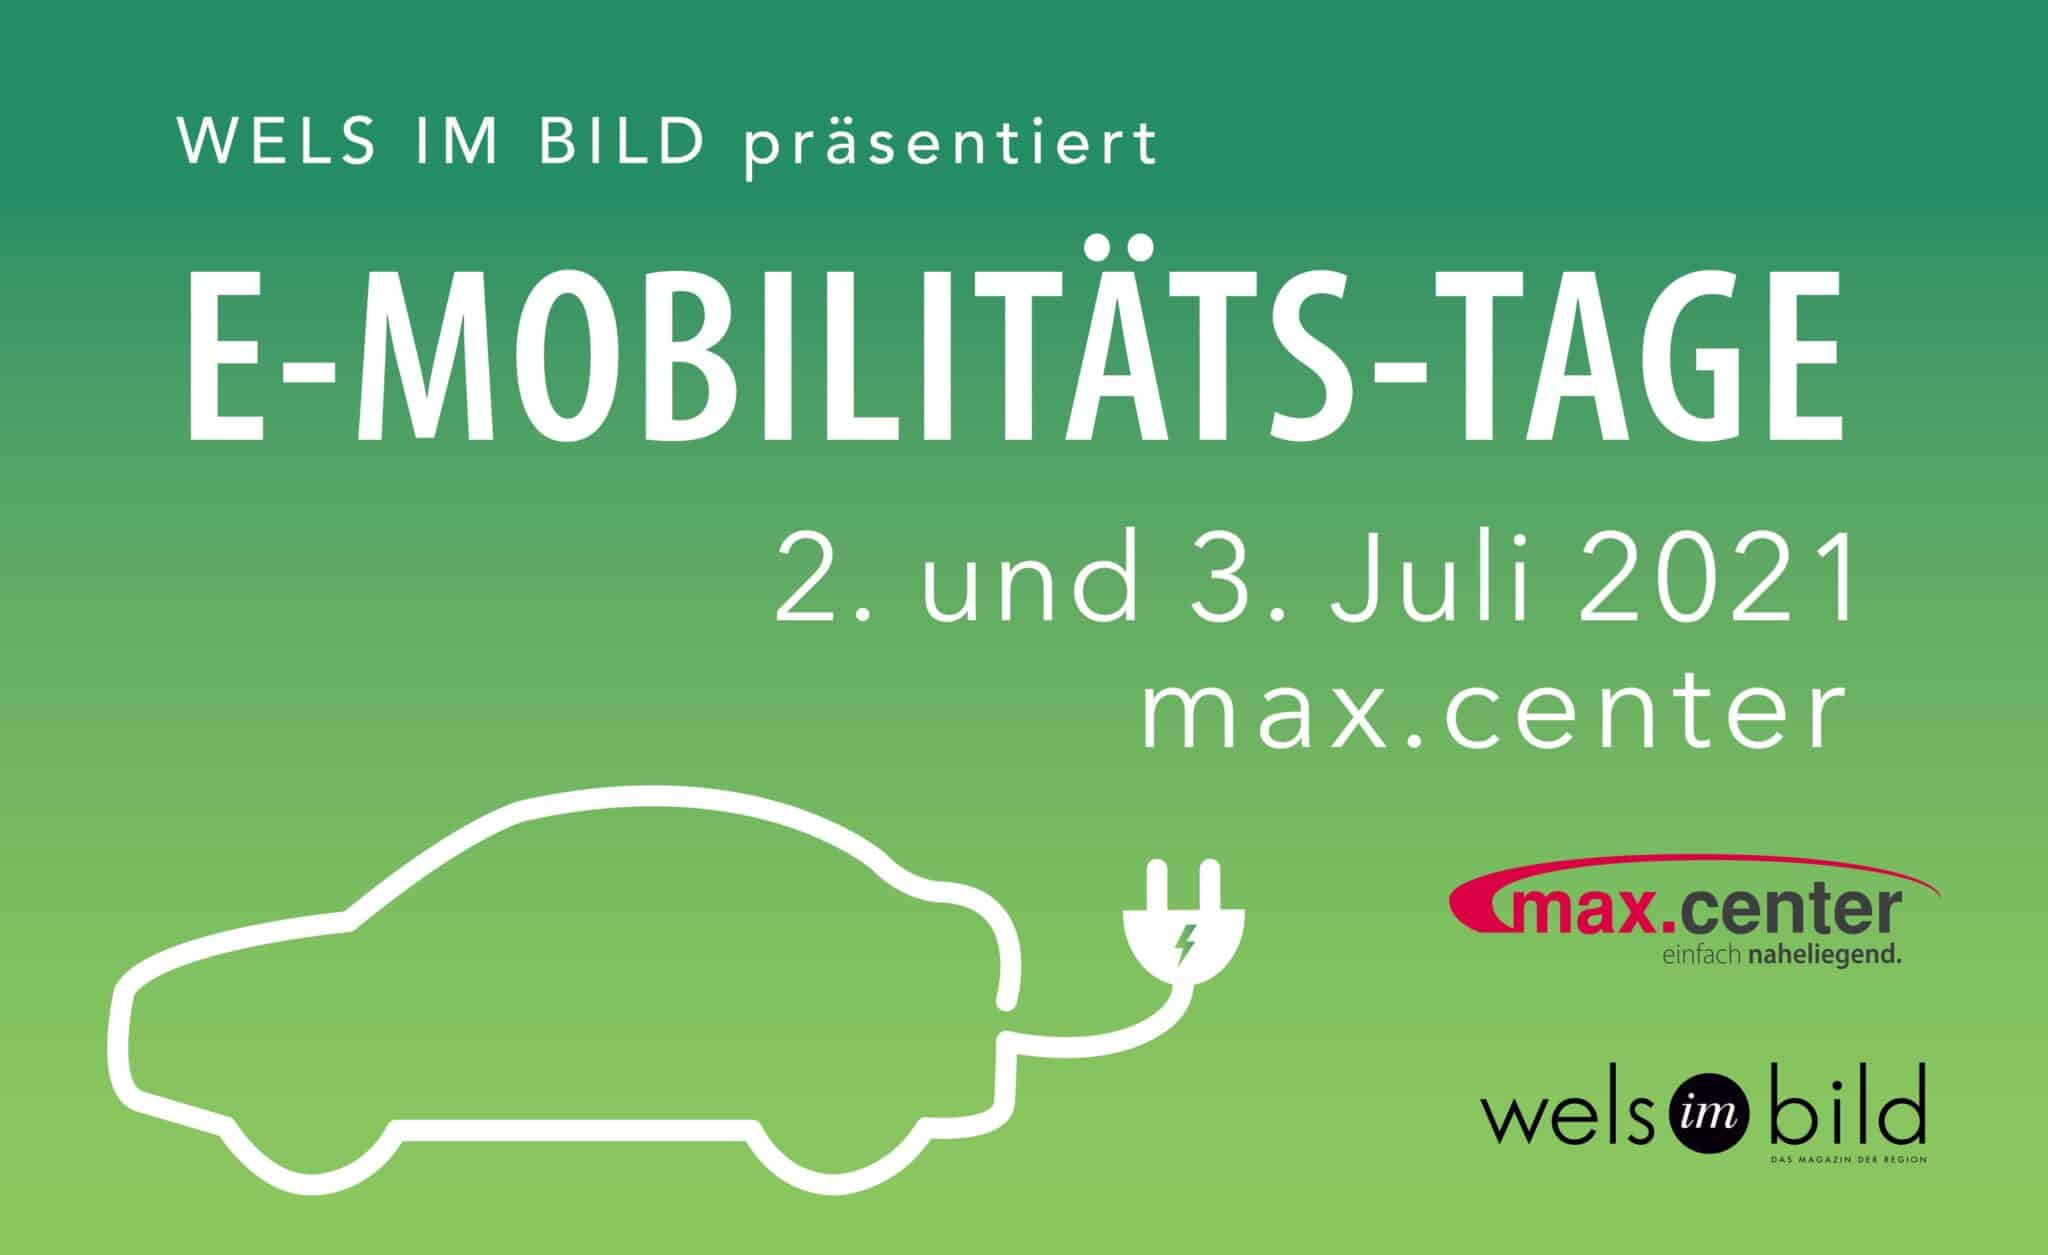 E-Mobilitäts-Tage - Wels | E Testag Wels scaled